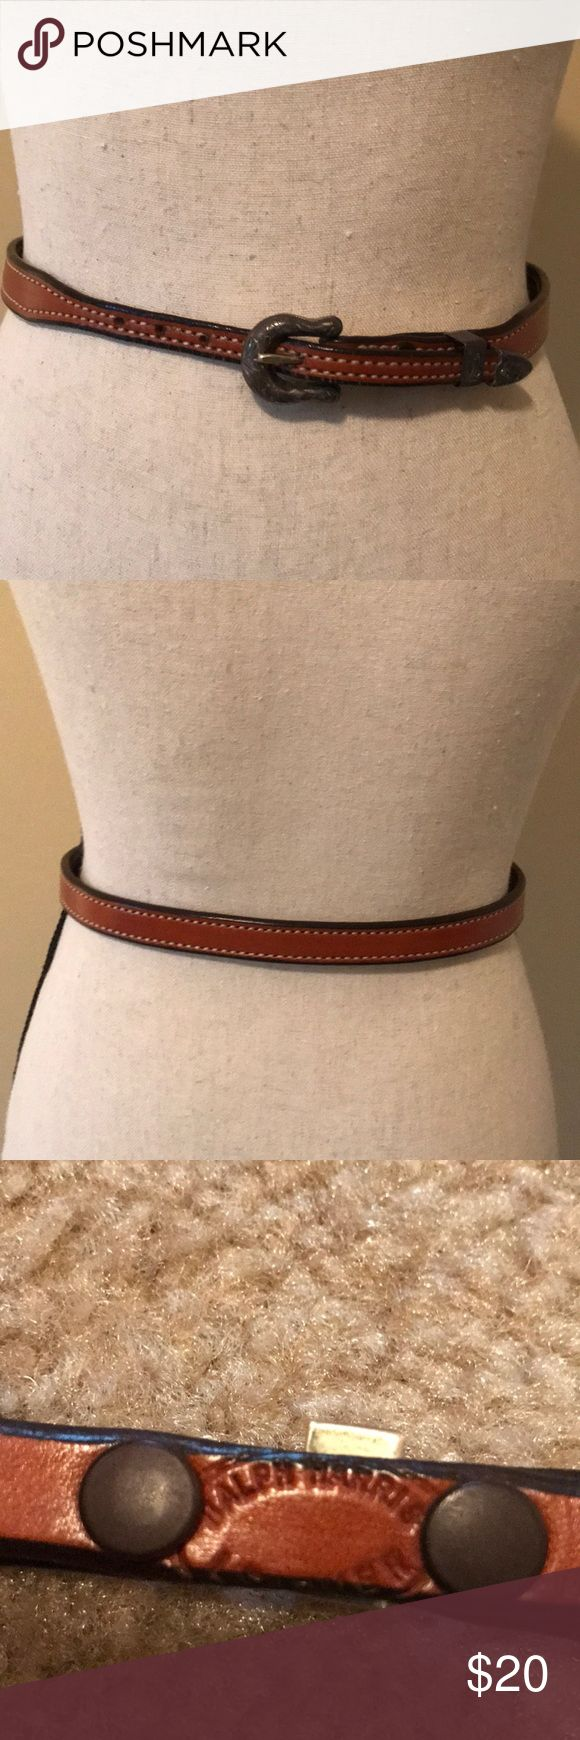 """(Leather) Western Style Belt This is a dark camel brown Ladies belt. Approximately 31.5"""" total length. Excellent vintage condition. Leather belt with sterling overlay on metal parts! Has 5 buckle holesfpr adjustment! Accessories Belts"""